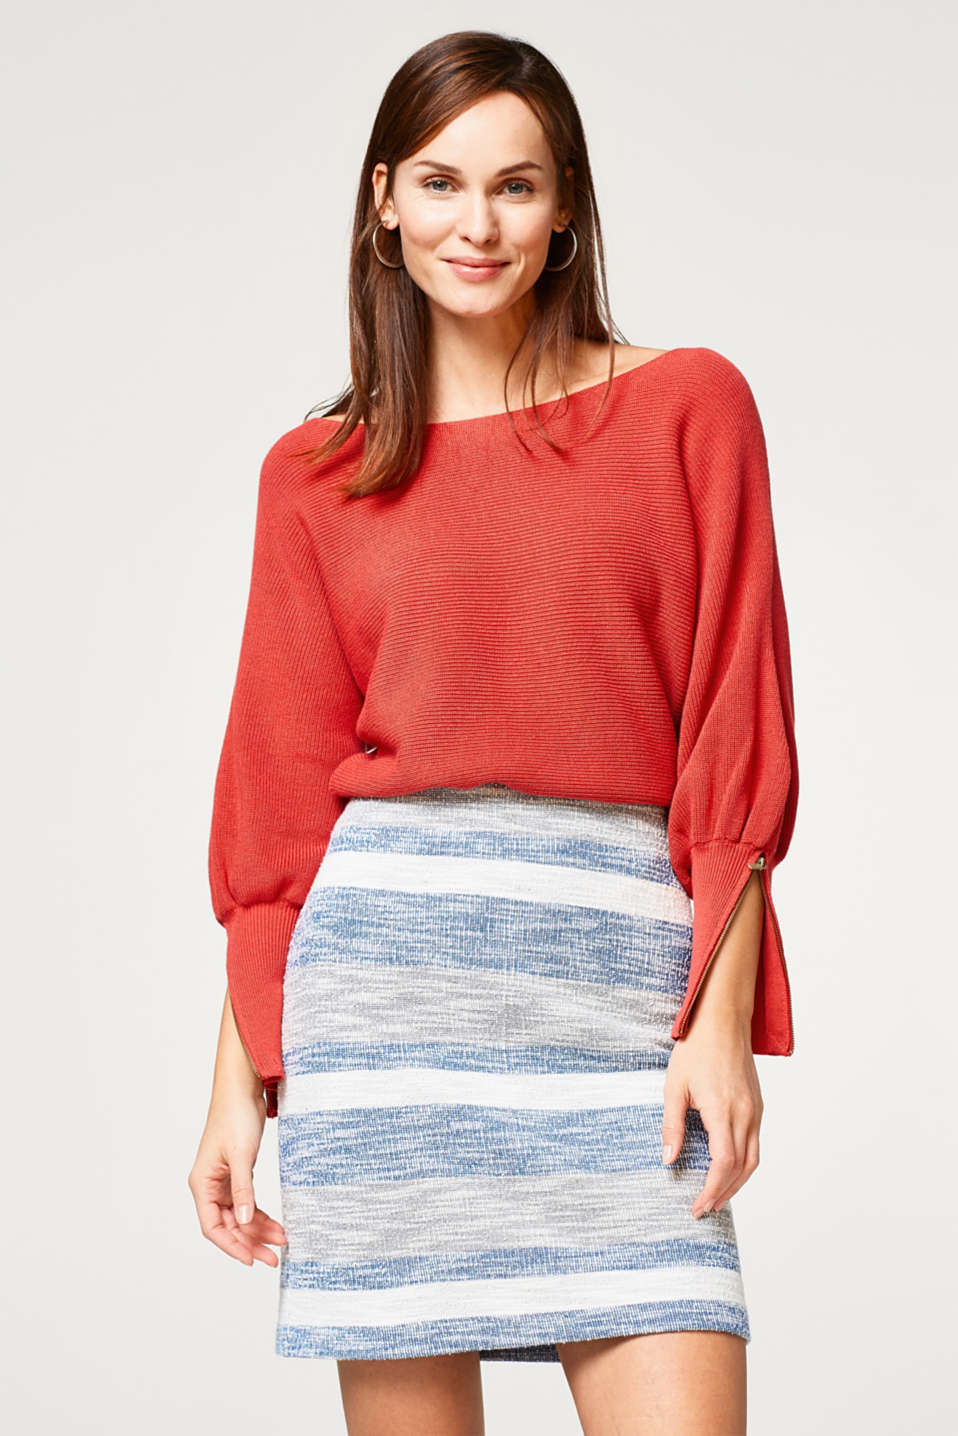 Esprit - Textured jersey skirt with block stripes